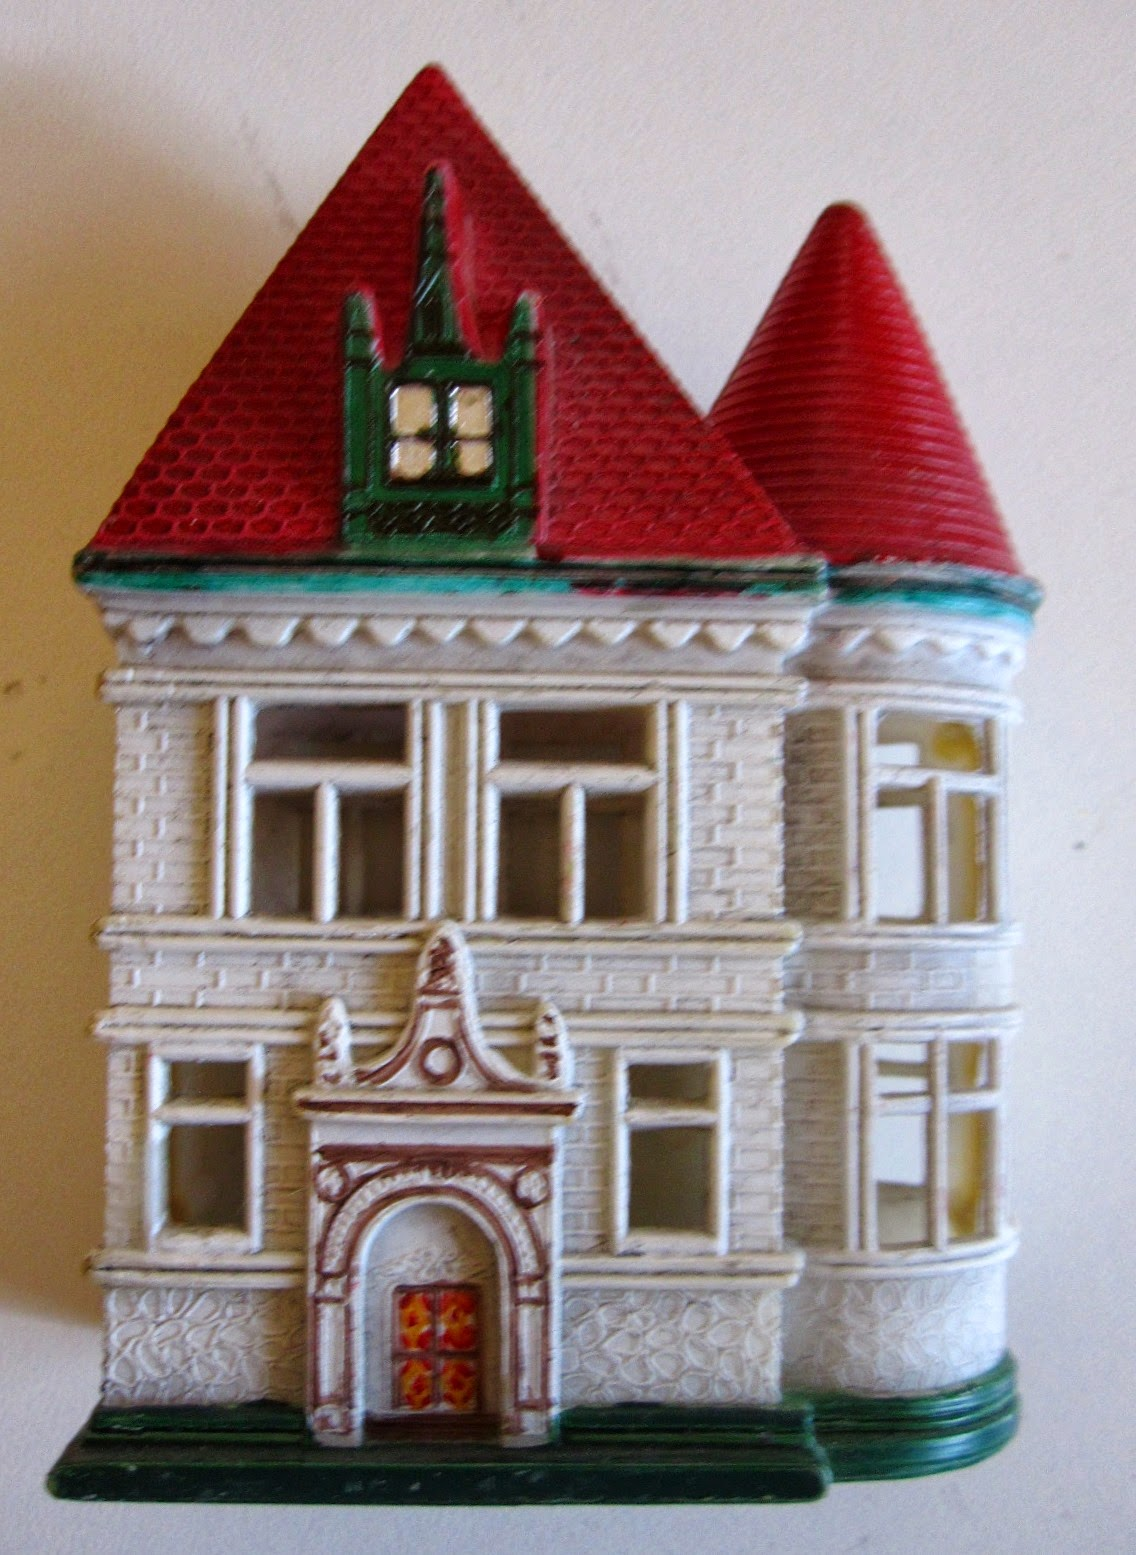 Plastic dolls' house for a dolls' house,